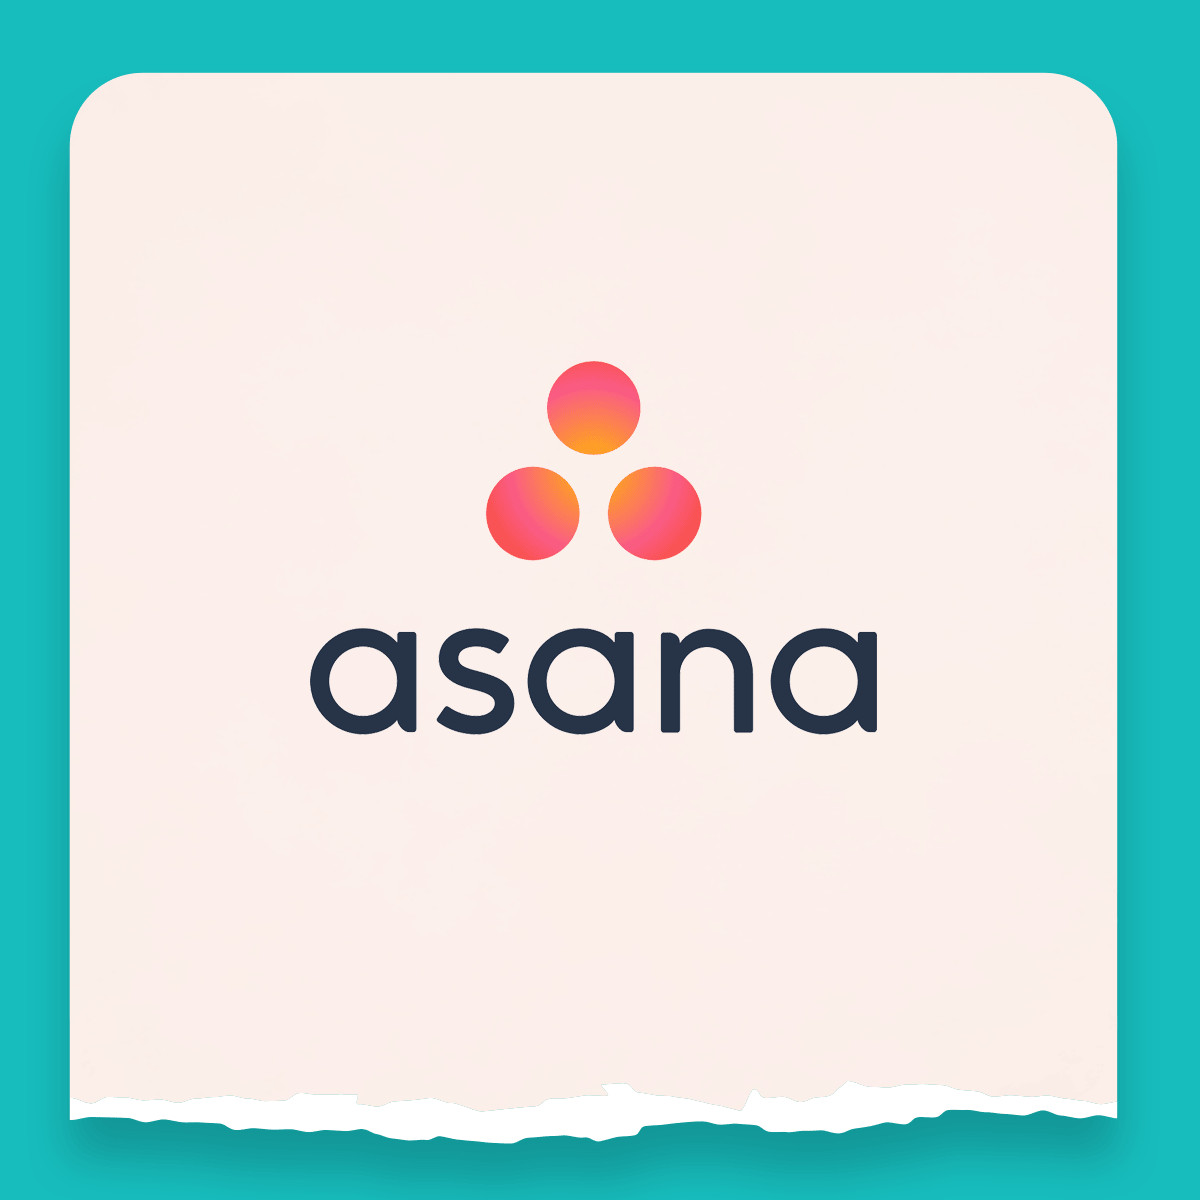 Asana: Used for task management